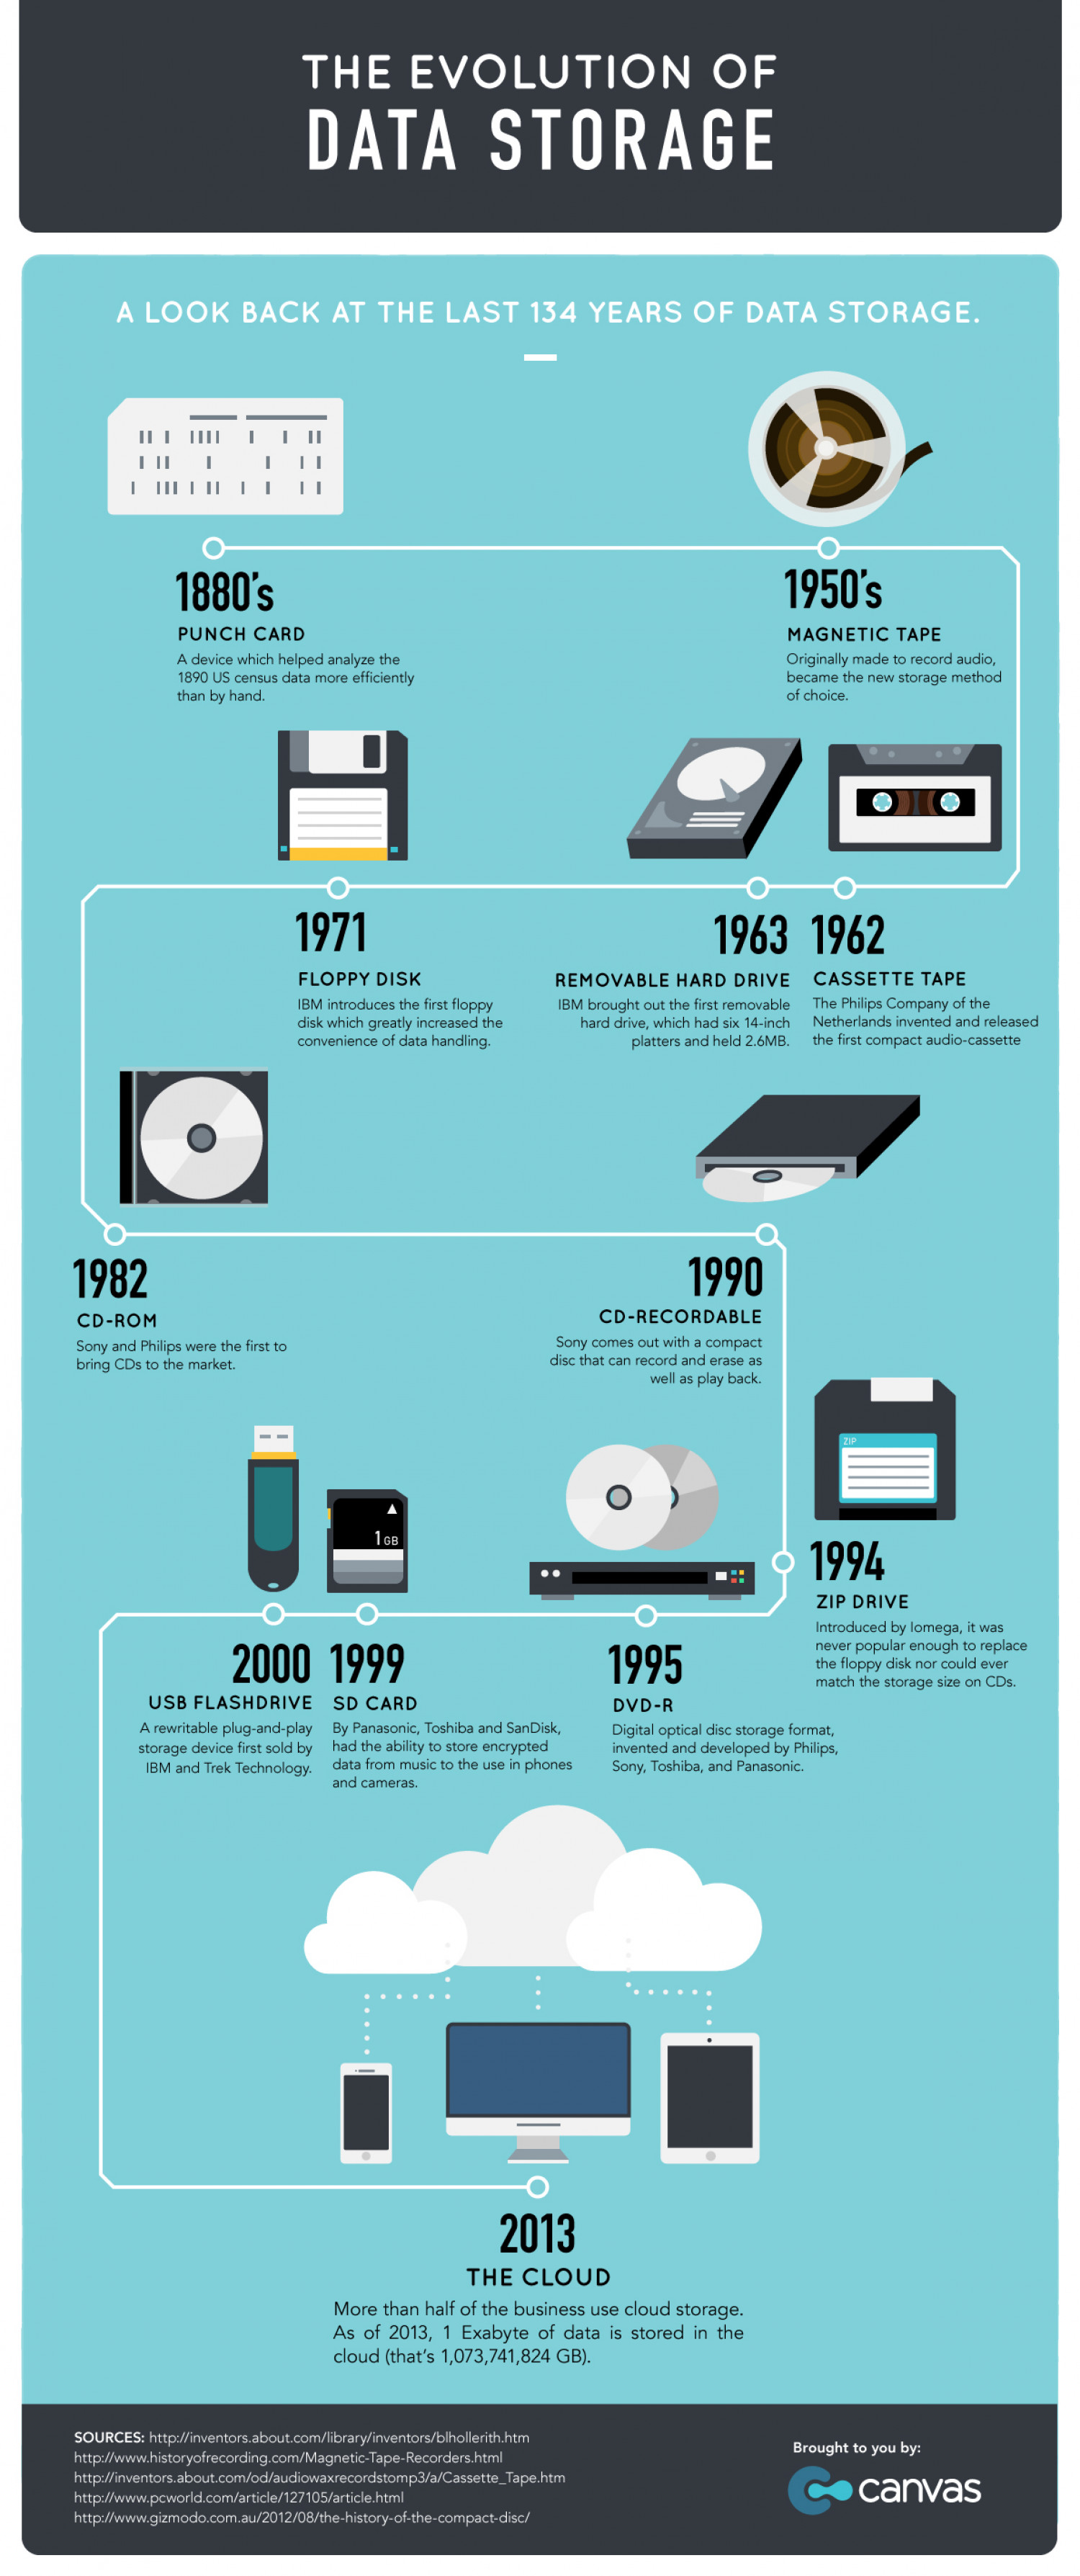 The Evolution of Data Storage Infographic